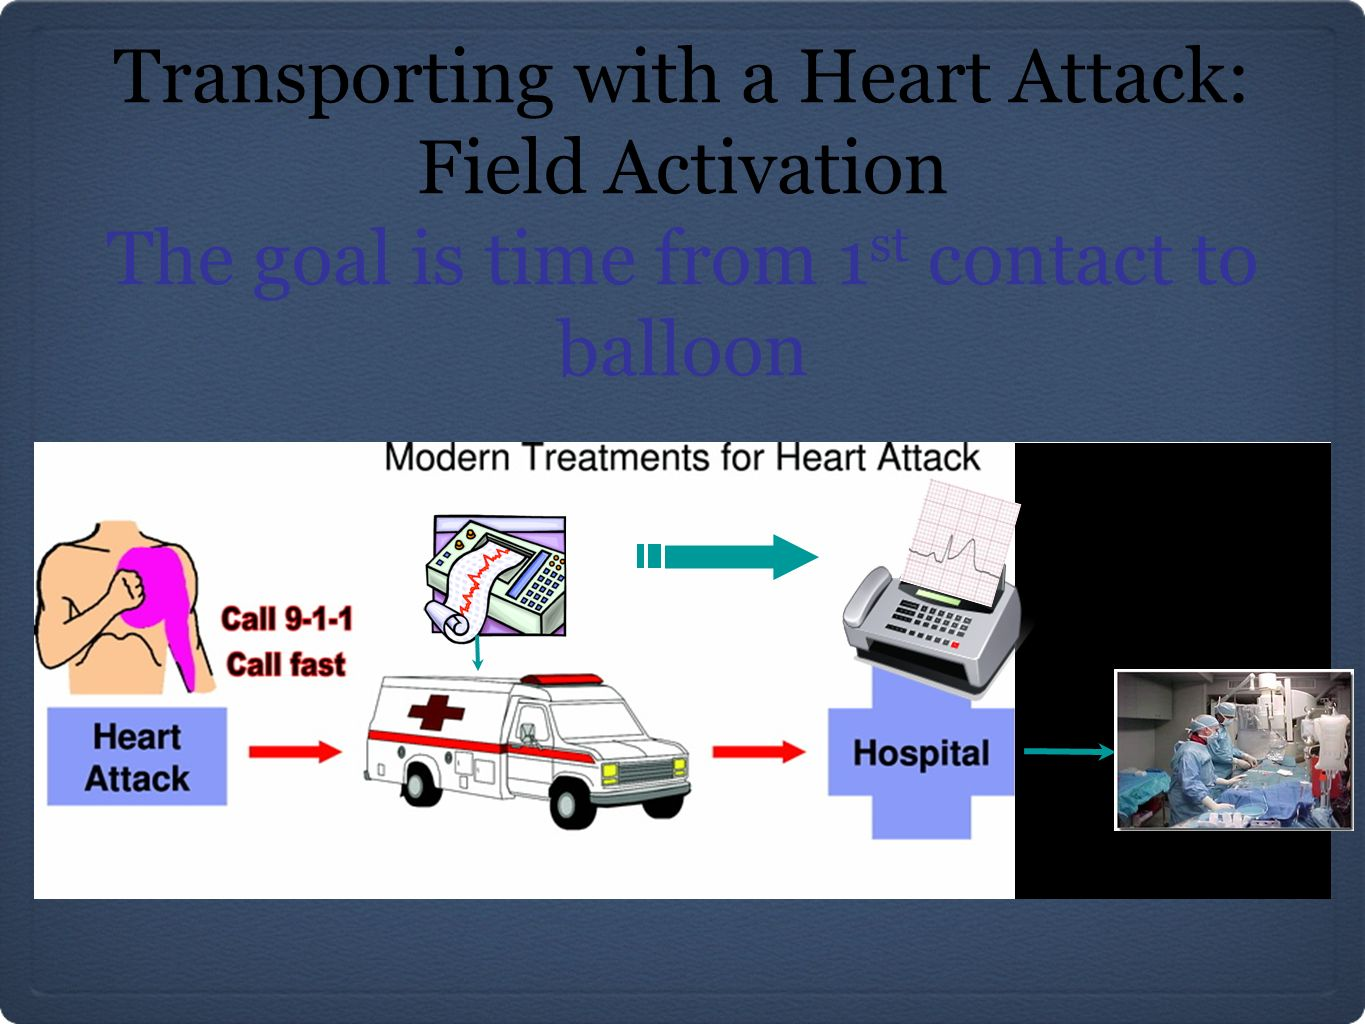 Transporting with a Heart Attack: Field Activation